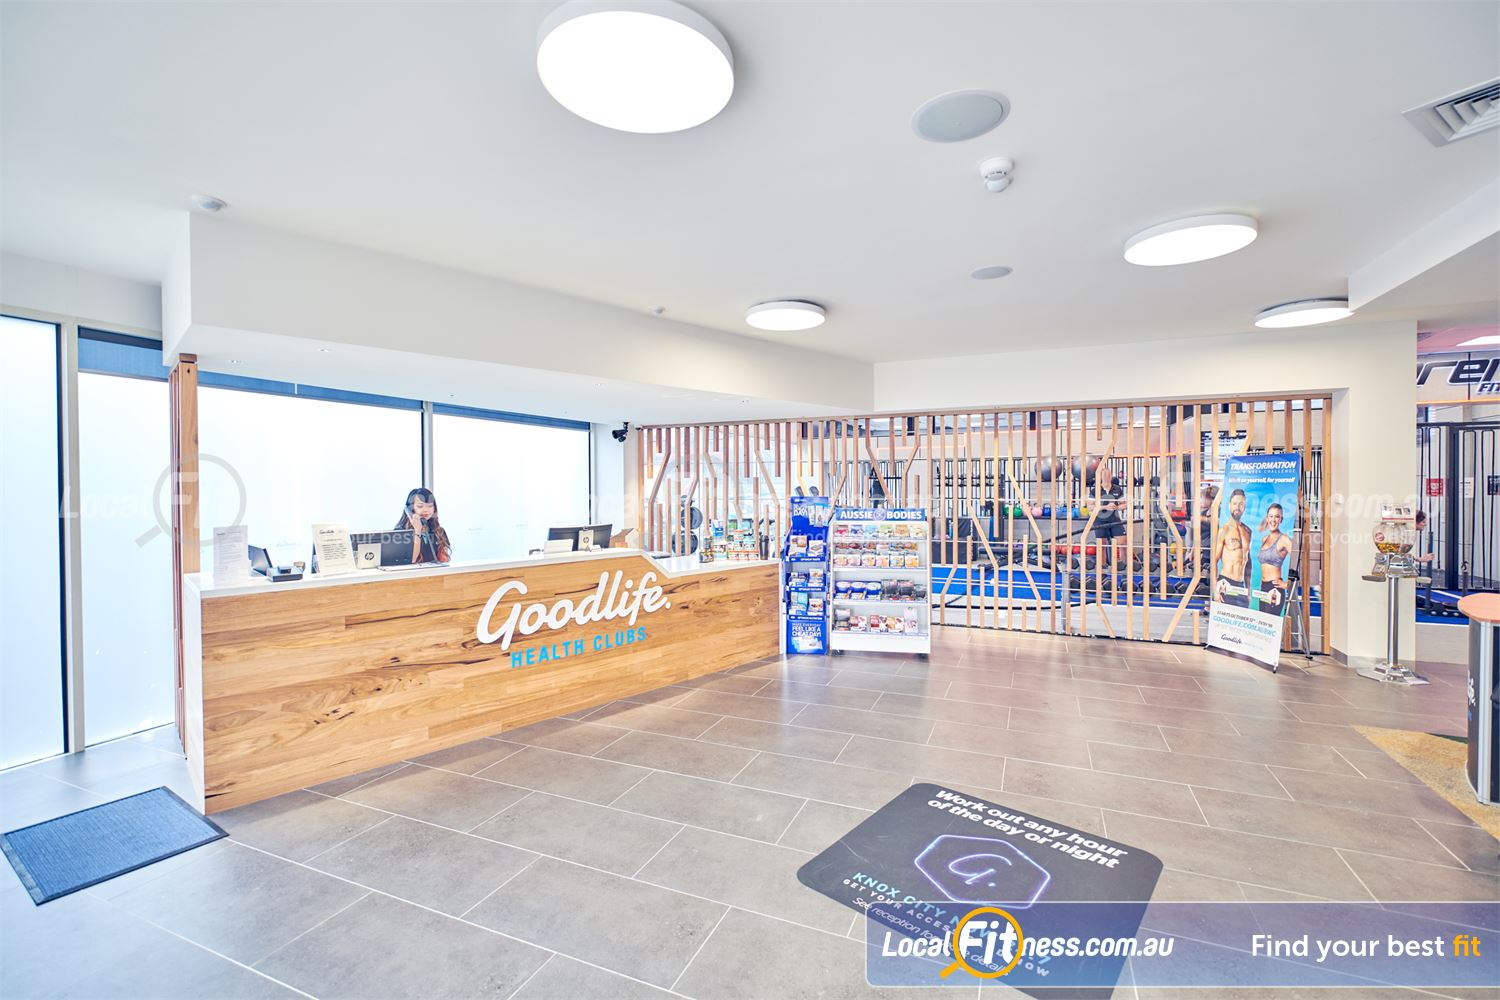 Goodlife Health Clubs Knox City Wantirna South Our Knox City gym team will welcome you when you arrive.